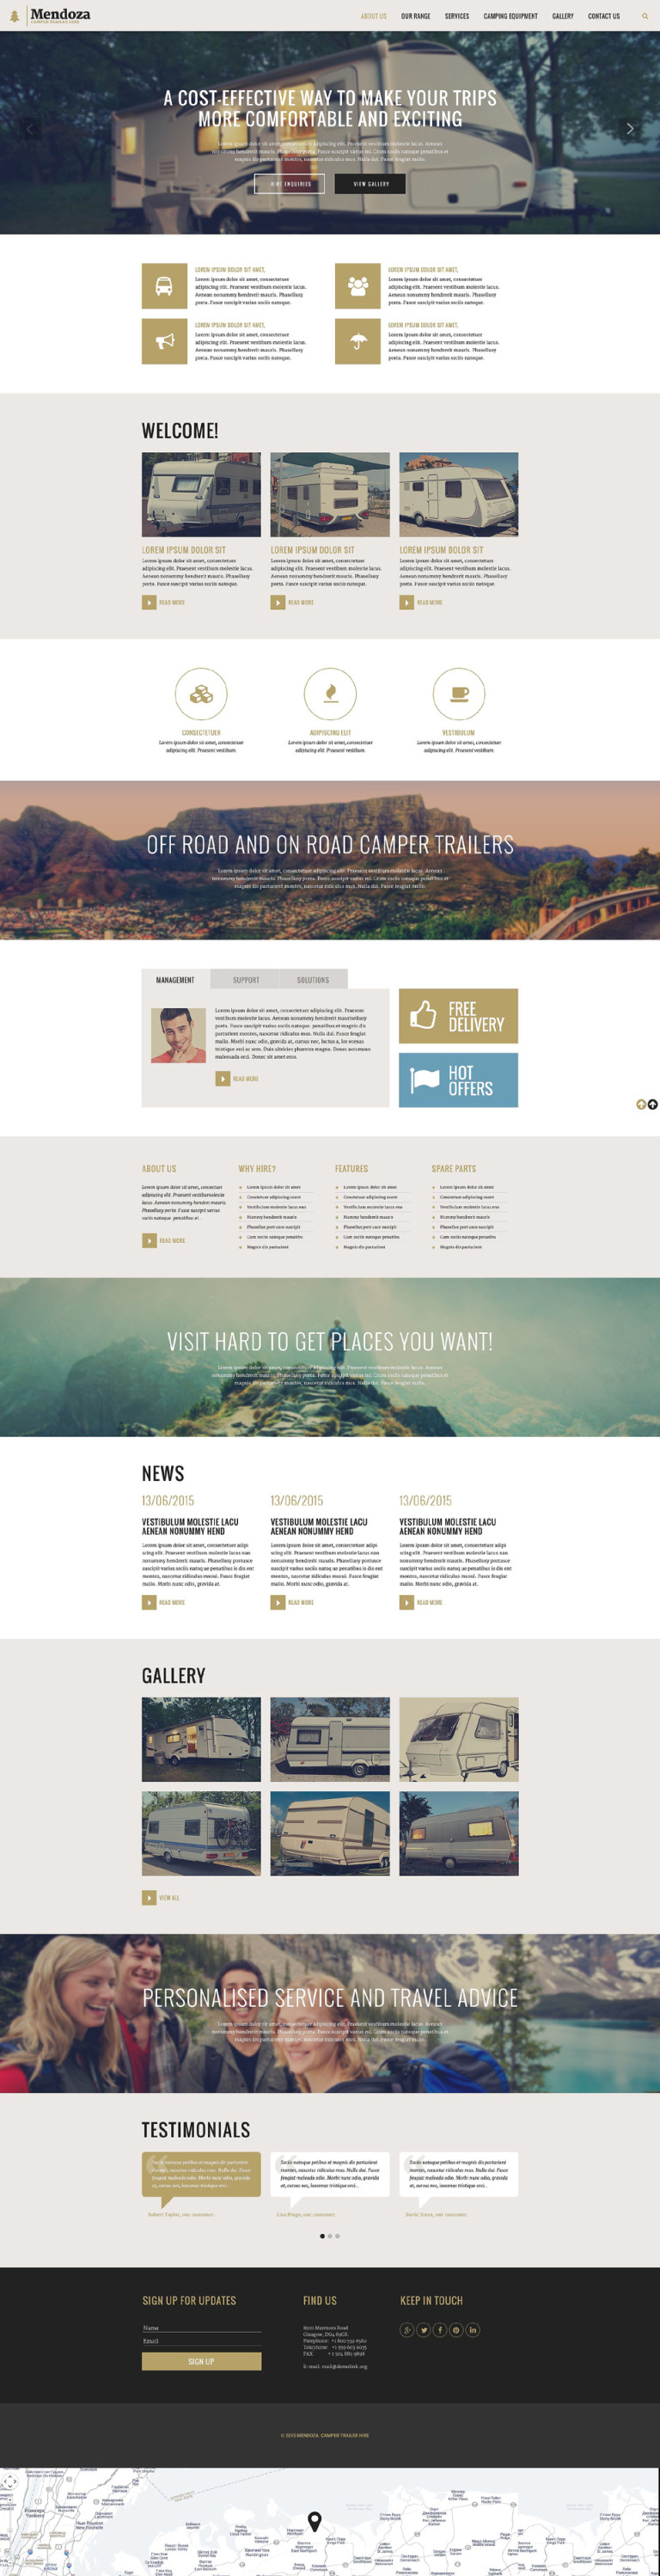 Mendoza Website Template New Screenshots BIG